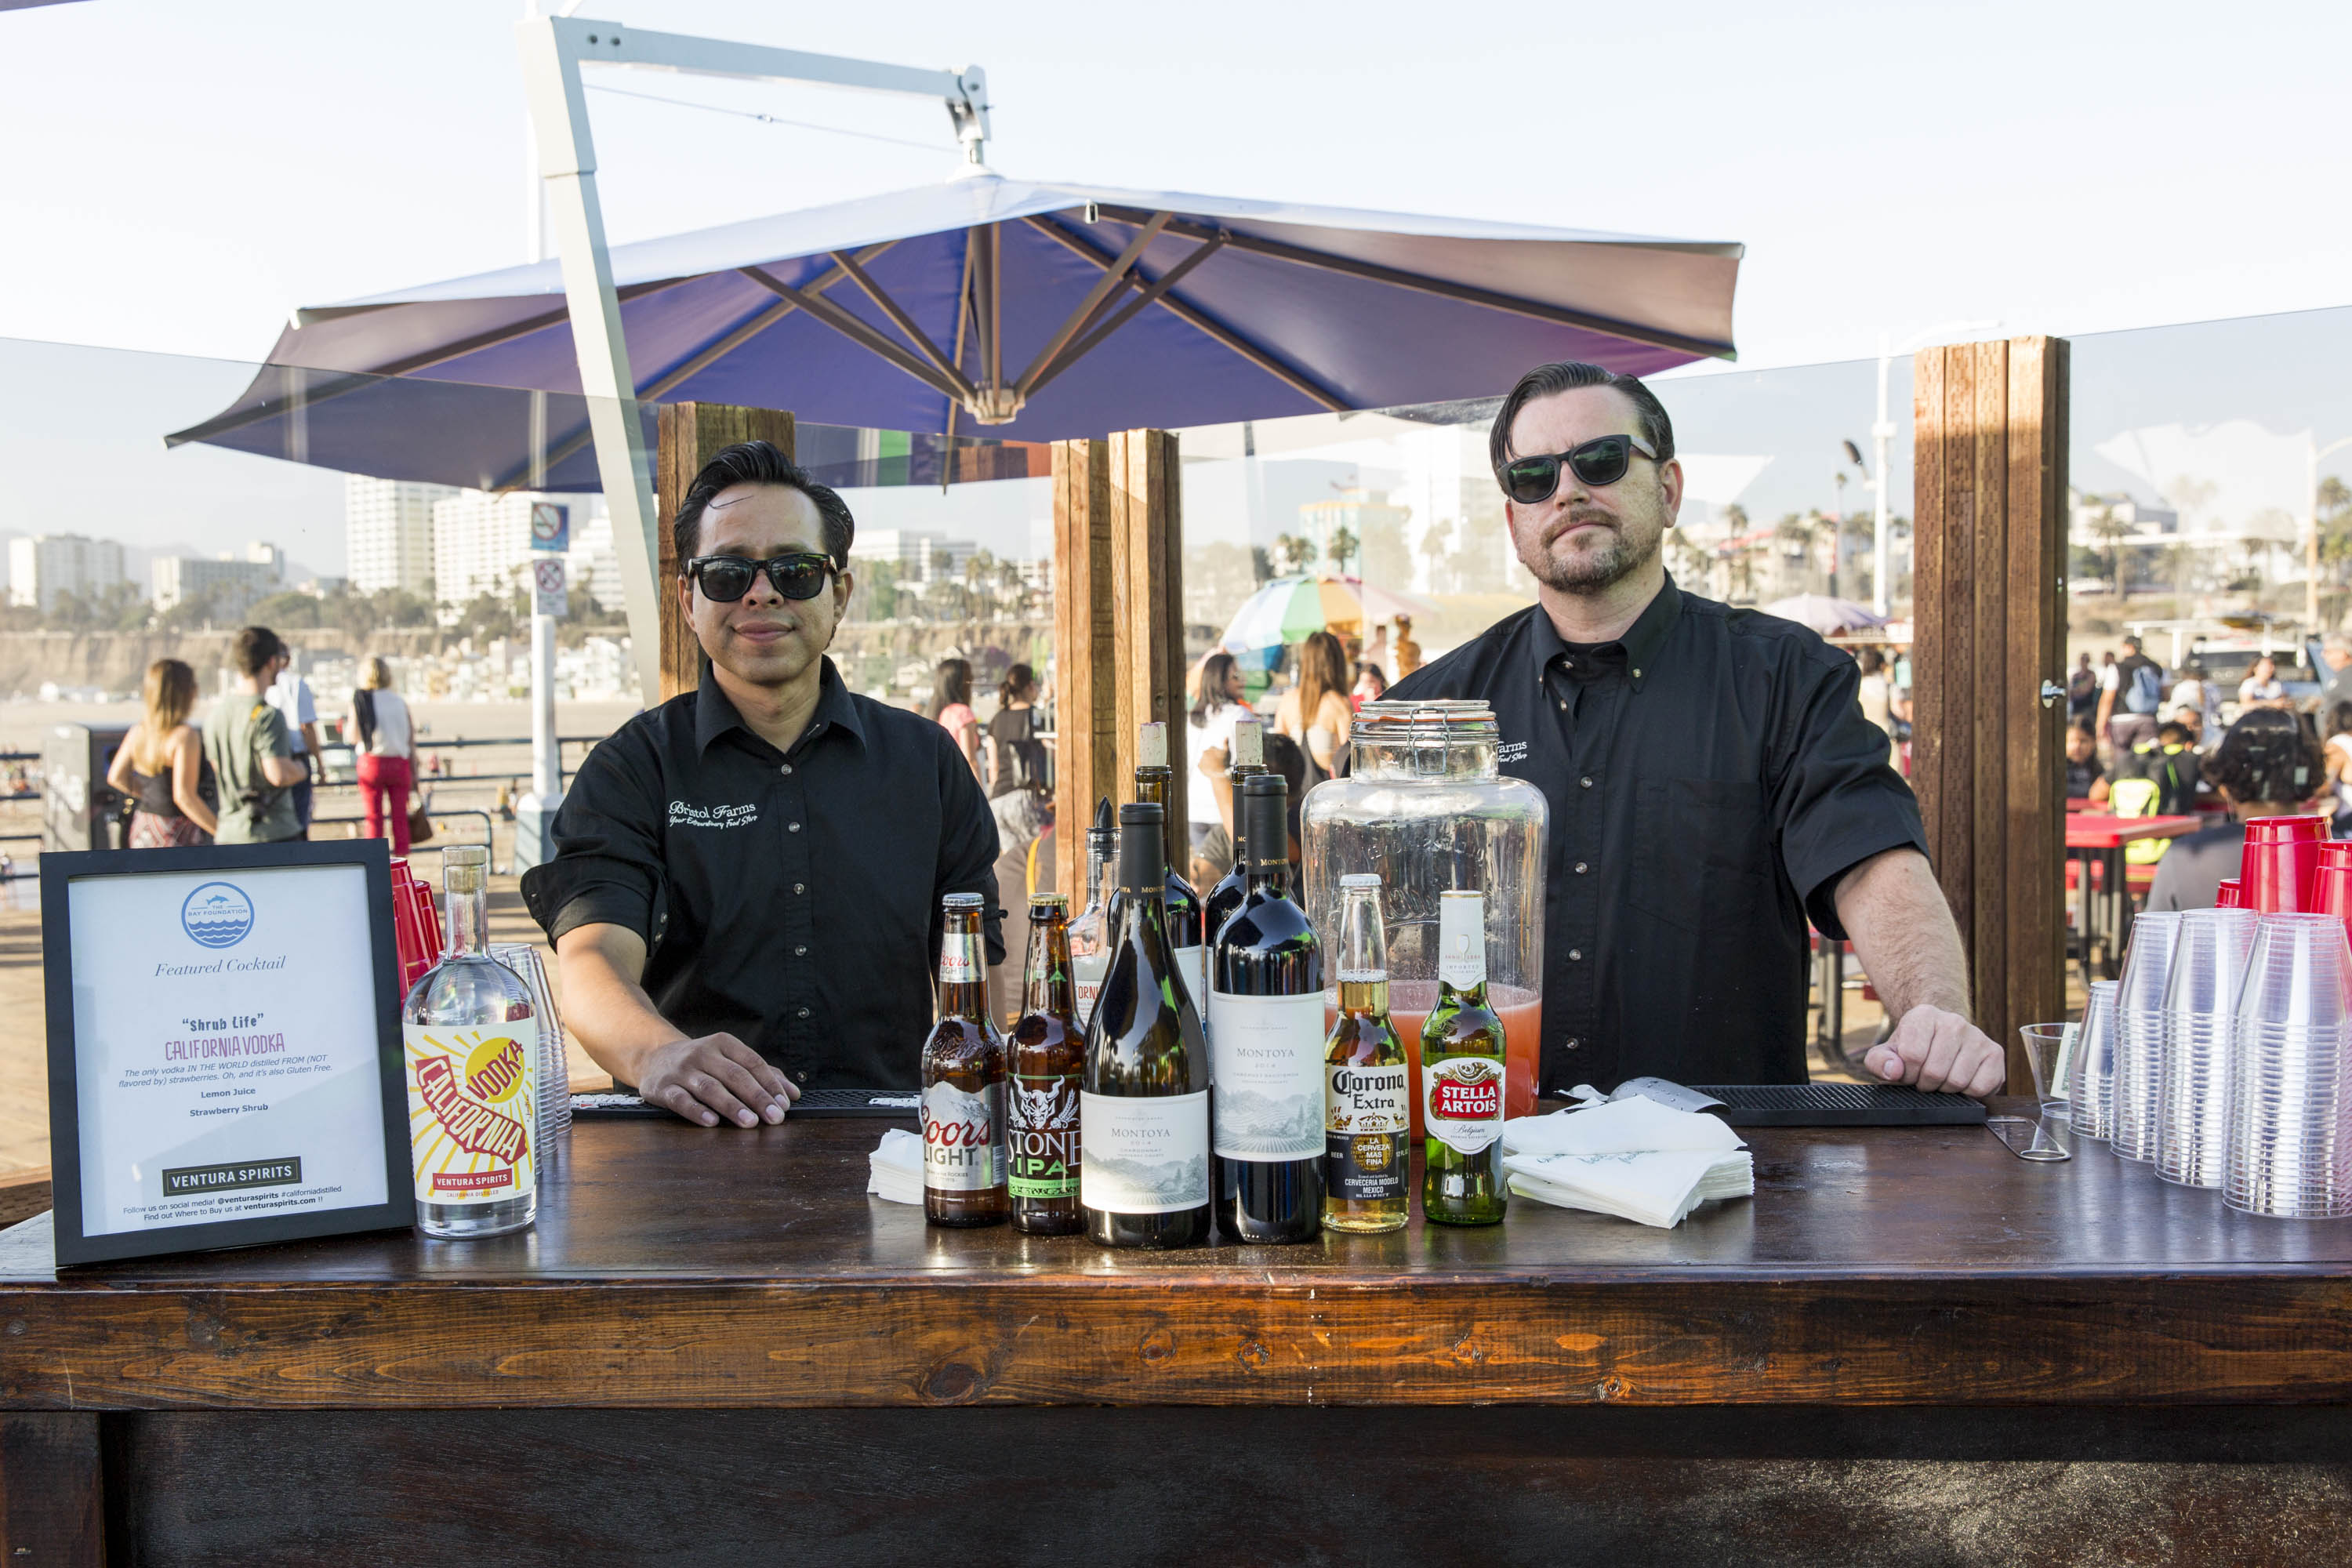 Enjoy a beverage, and thanks to Ventura Spirits